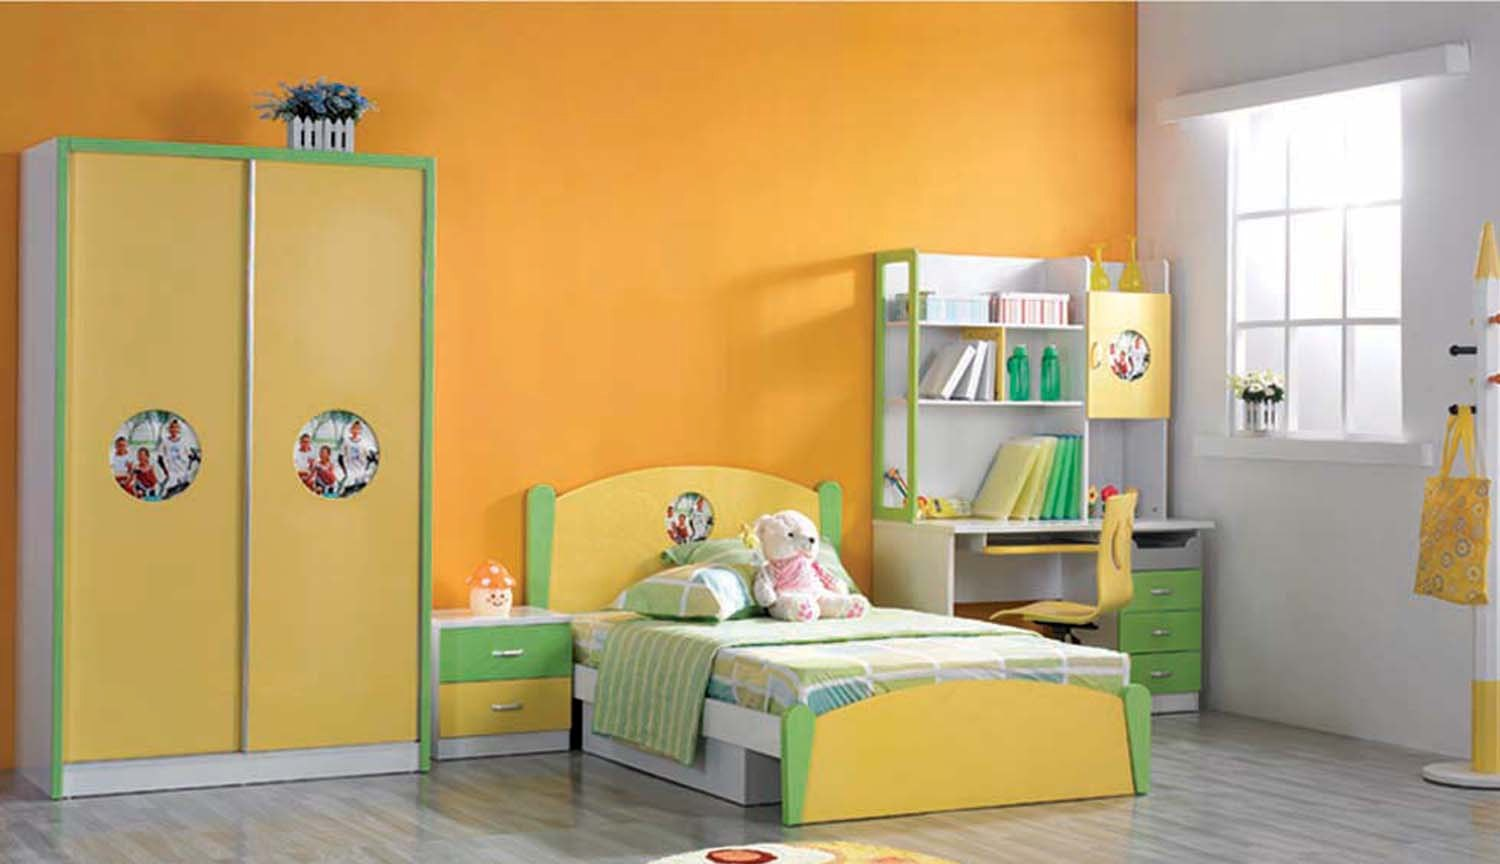 Marvelous And Exciting Kids Bedroom Designs Amaza Design Ideas Monday Fabulous You Are Simply Look Job Ladybug Magnificent Apppie Org